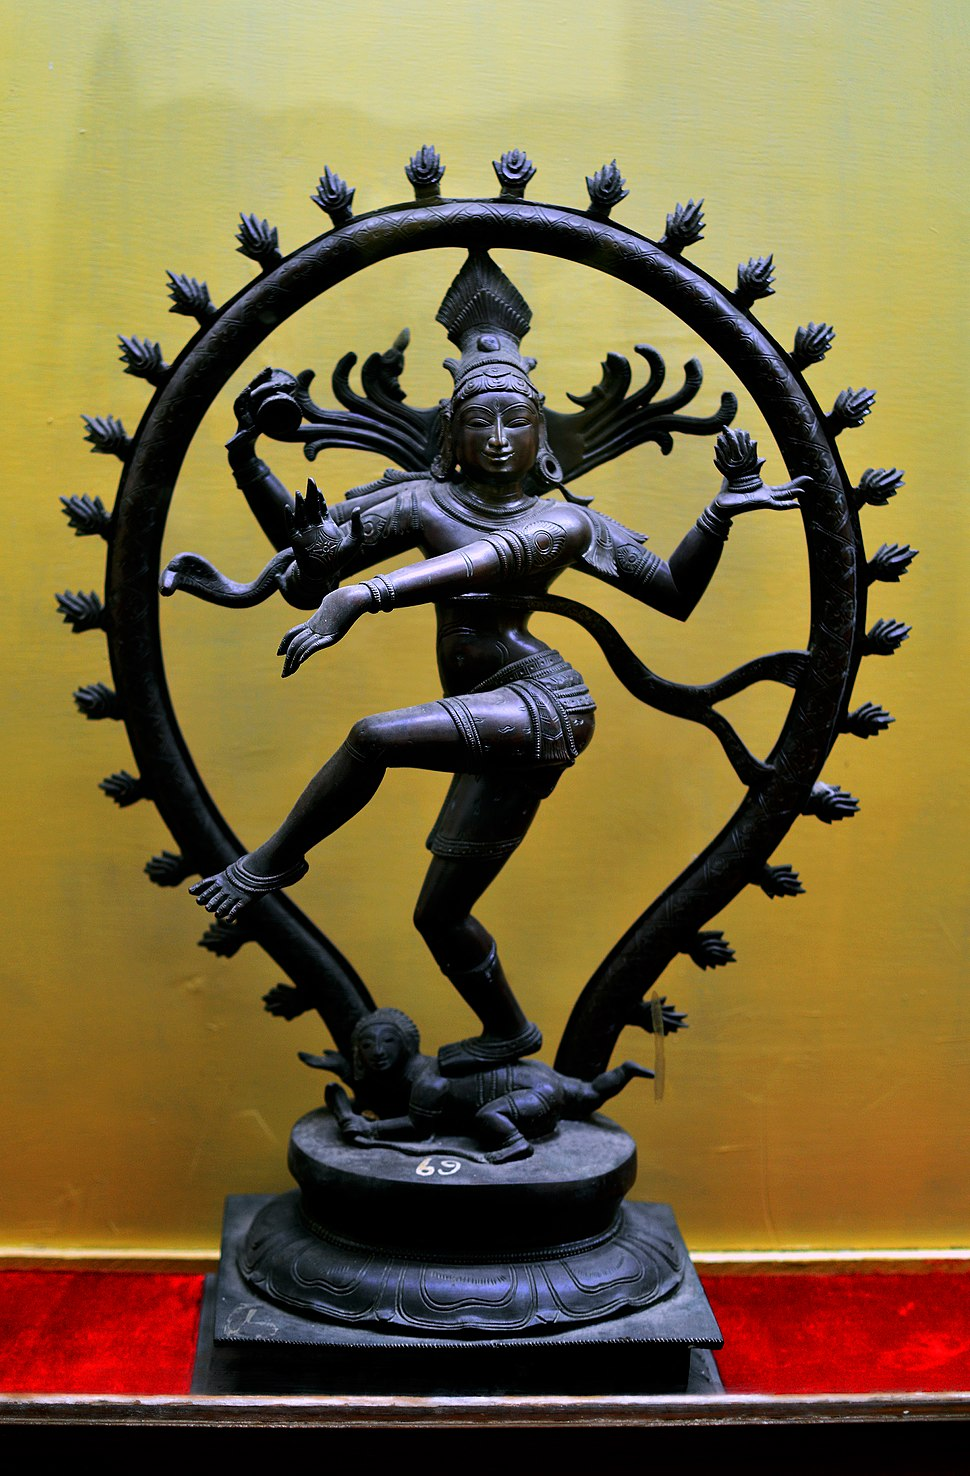 Nataraja The Lord of Dance from Thanjavur Palace